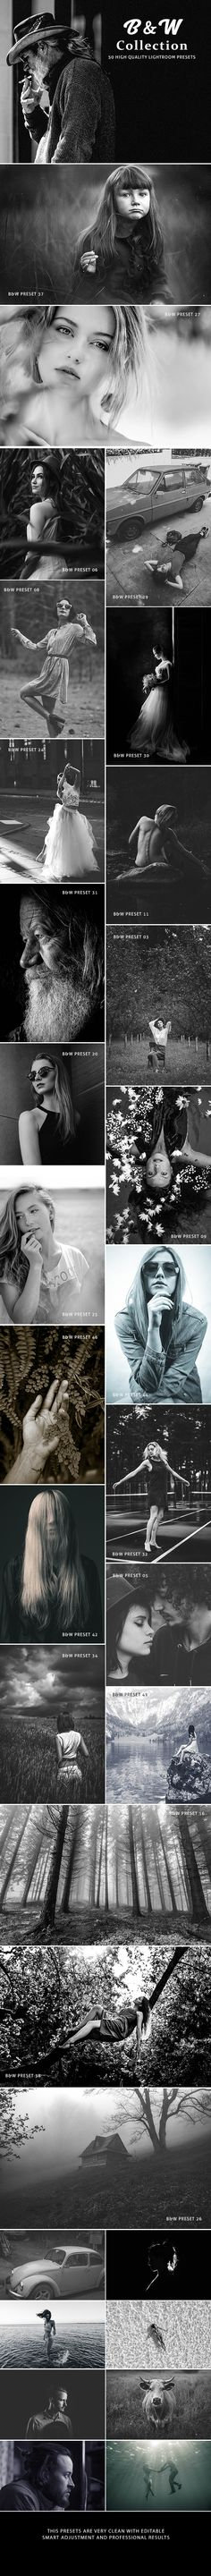 B&W Collection 50 Lightroom Presets - #Lightroom Presets Add-ons